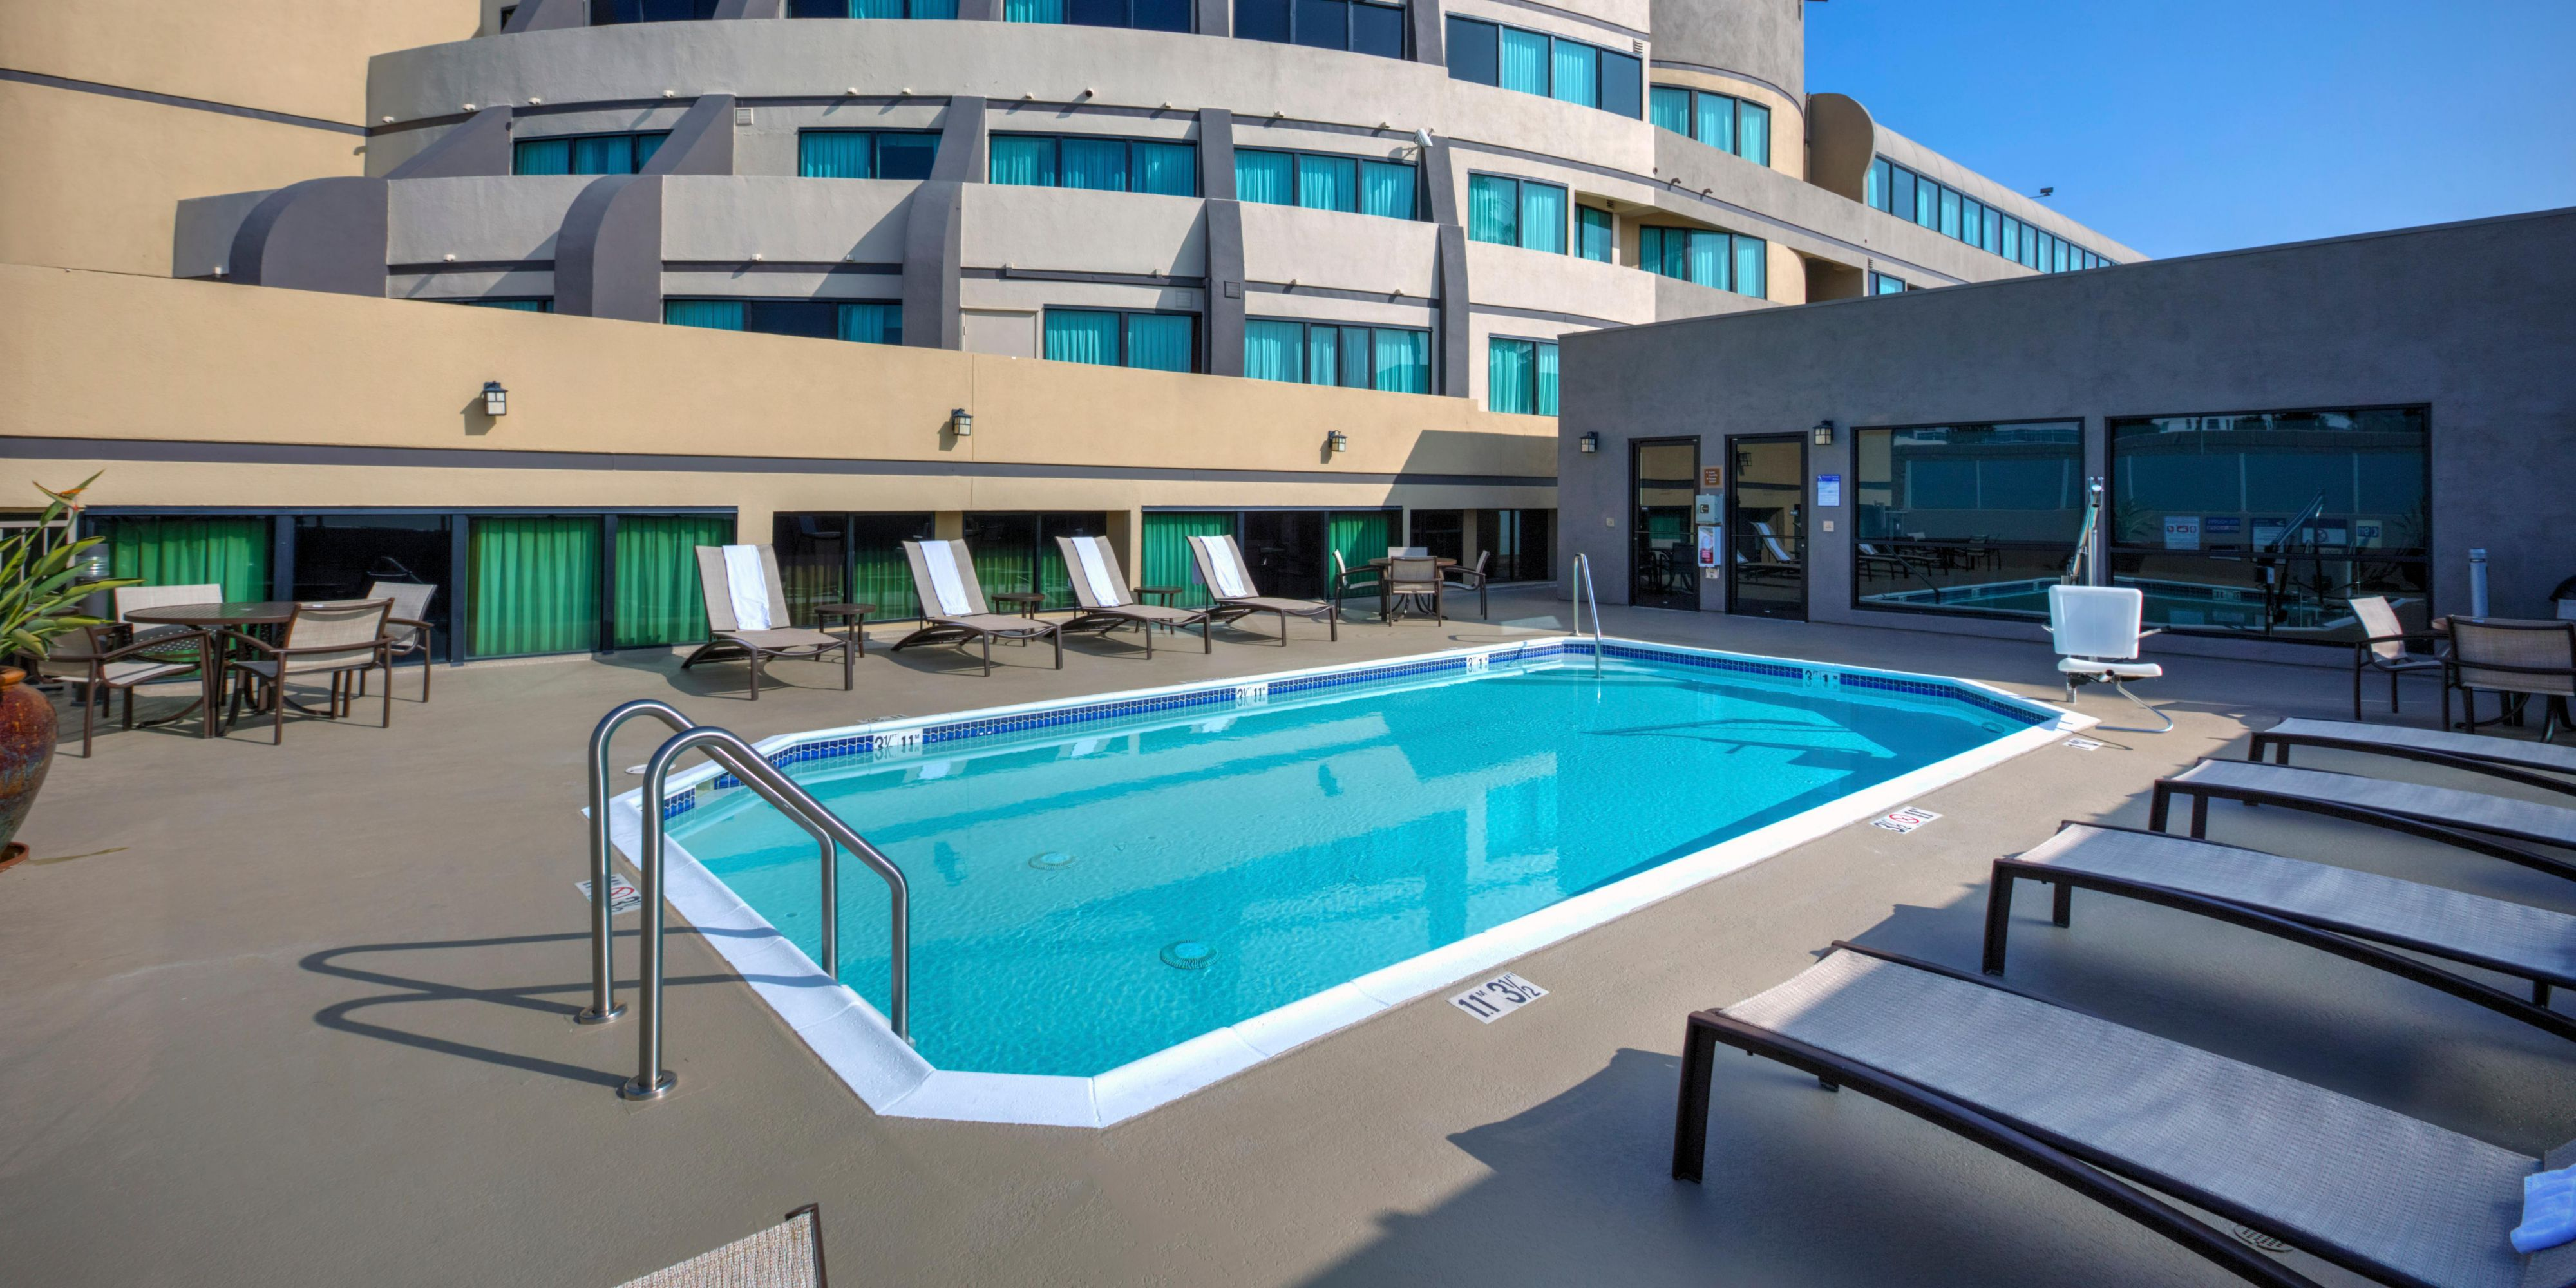 Hotels in Fullerton, CA | Holiday Inn & Suites Anaheim ...